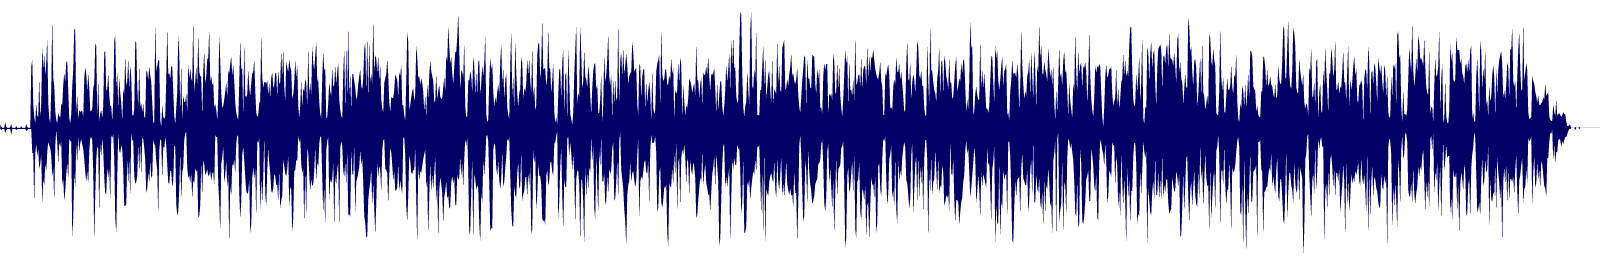 waveform of track #89181